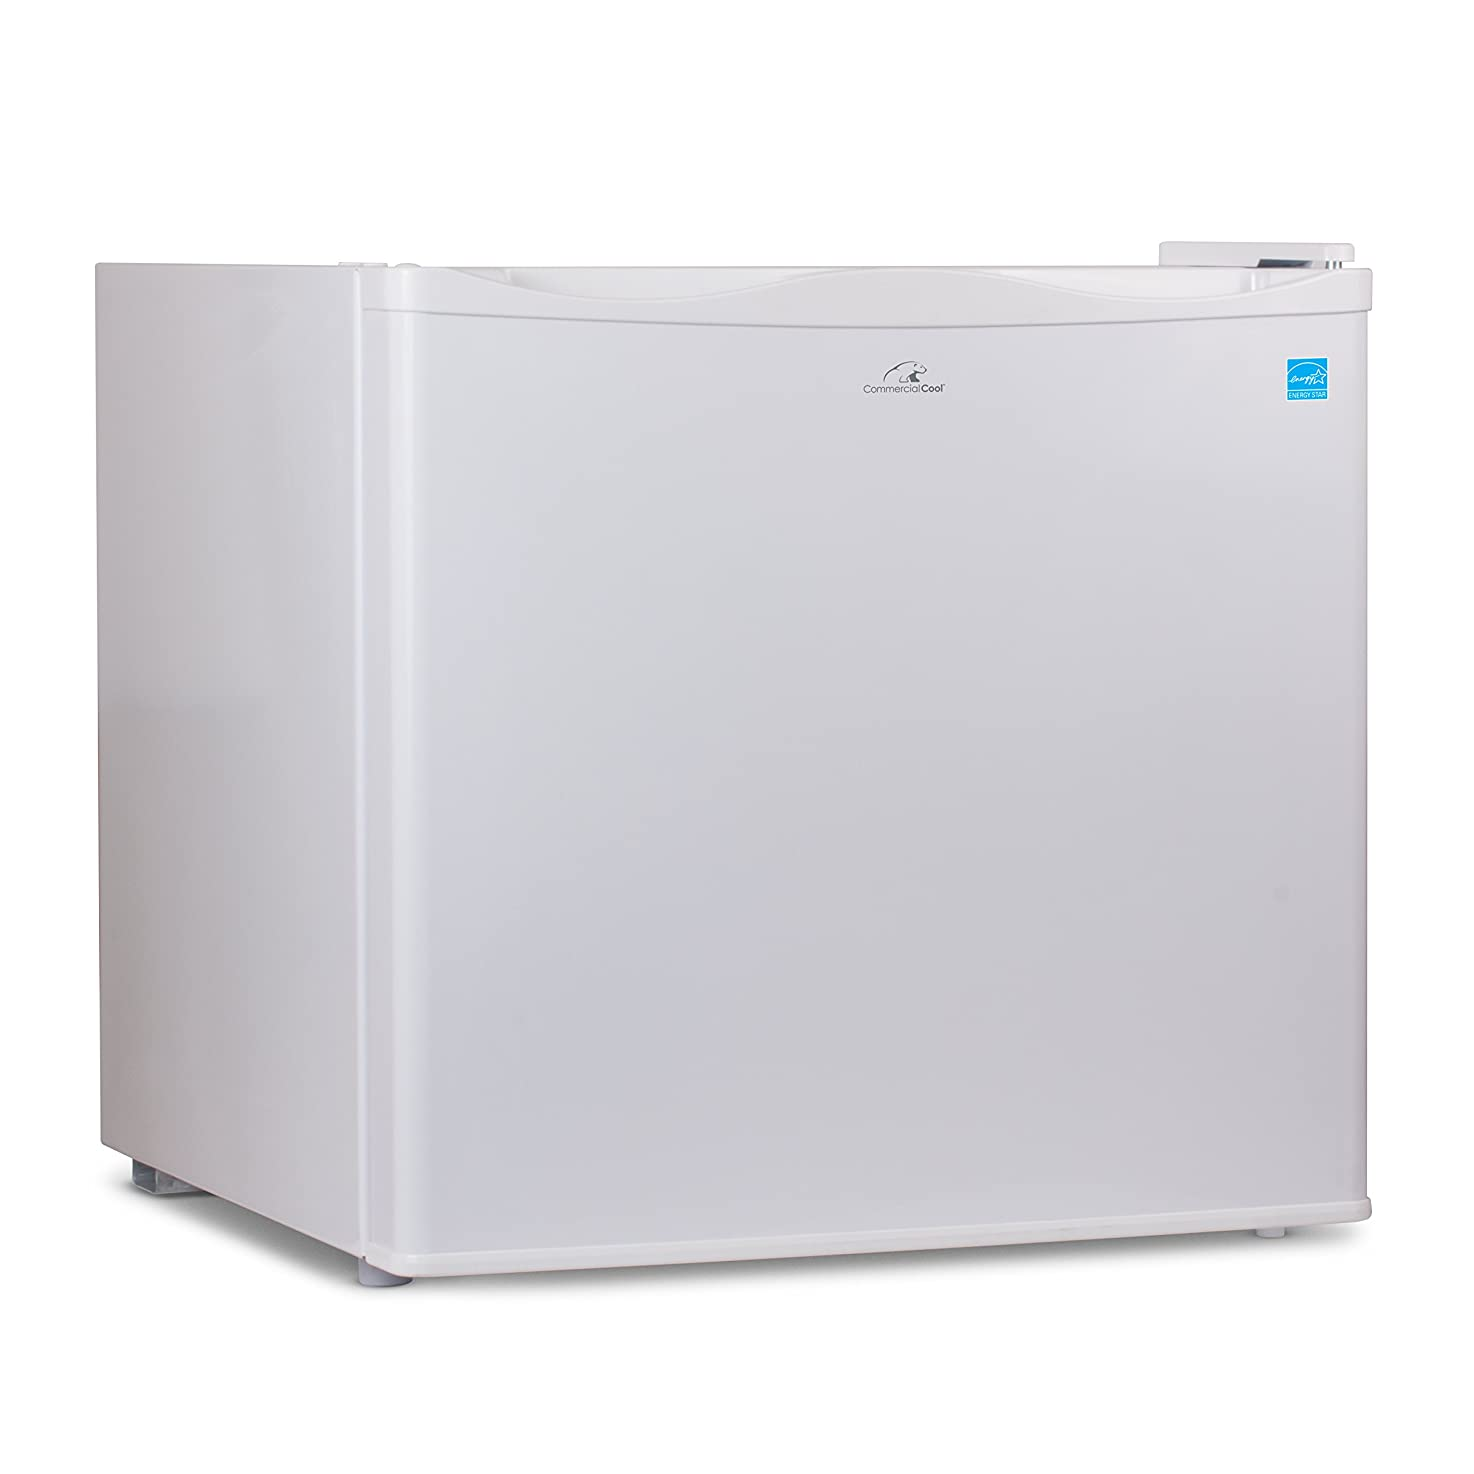 Commercial Cool CCUK12W 1.2 Cu. Ft. Upright Freezer with Adjustable Thermostat Control and R600a Refrigerant, White ombnbbqbxzoes7